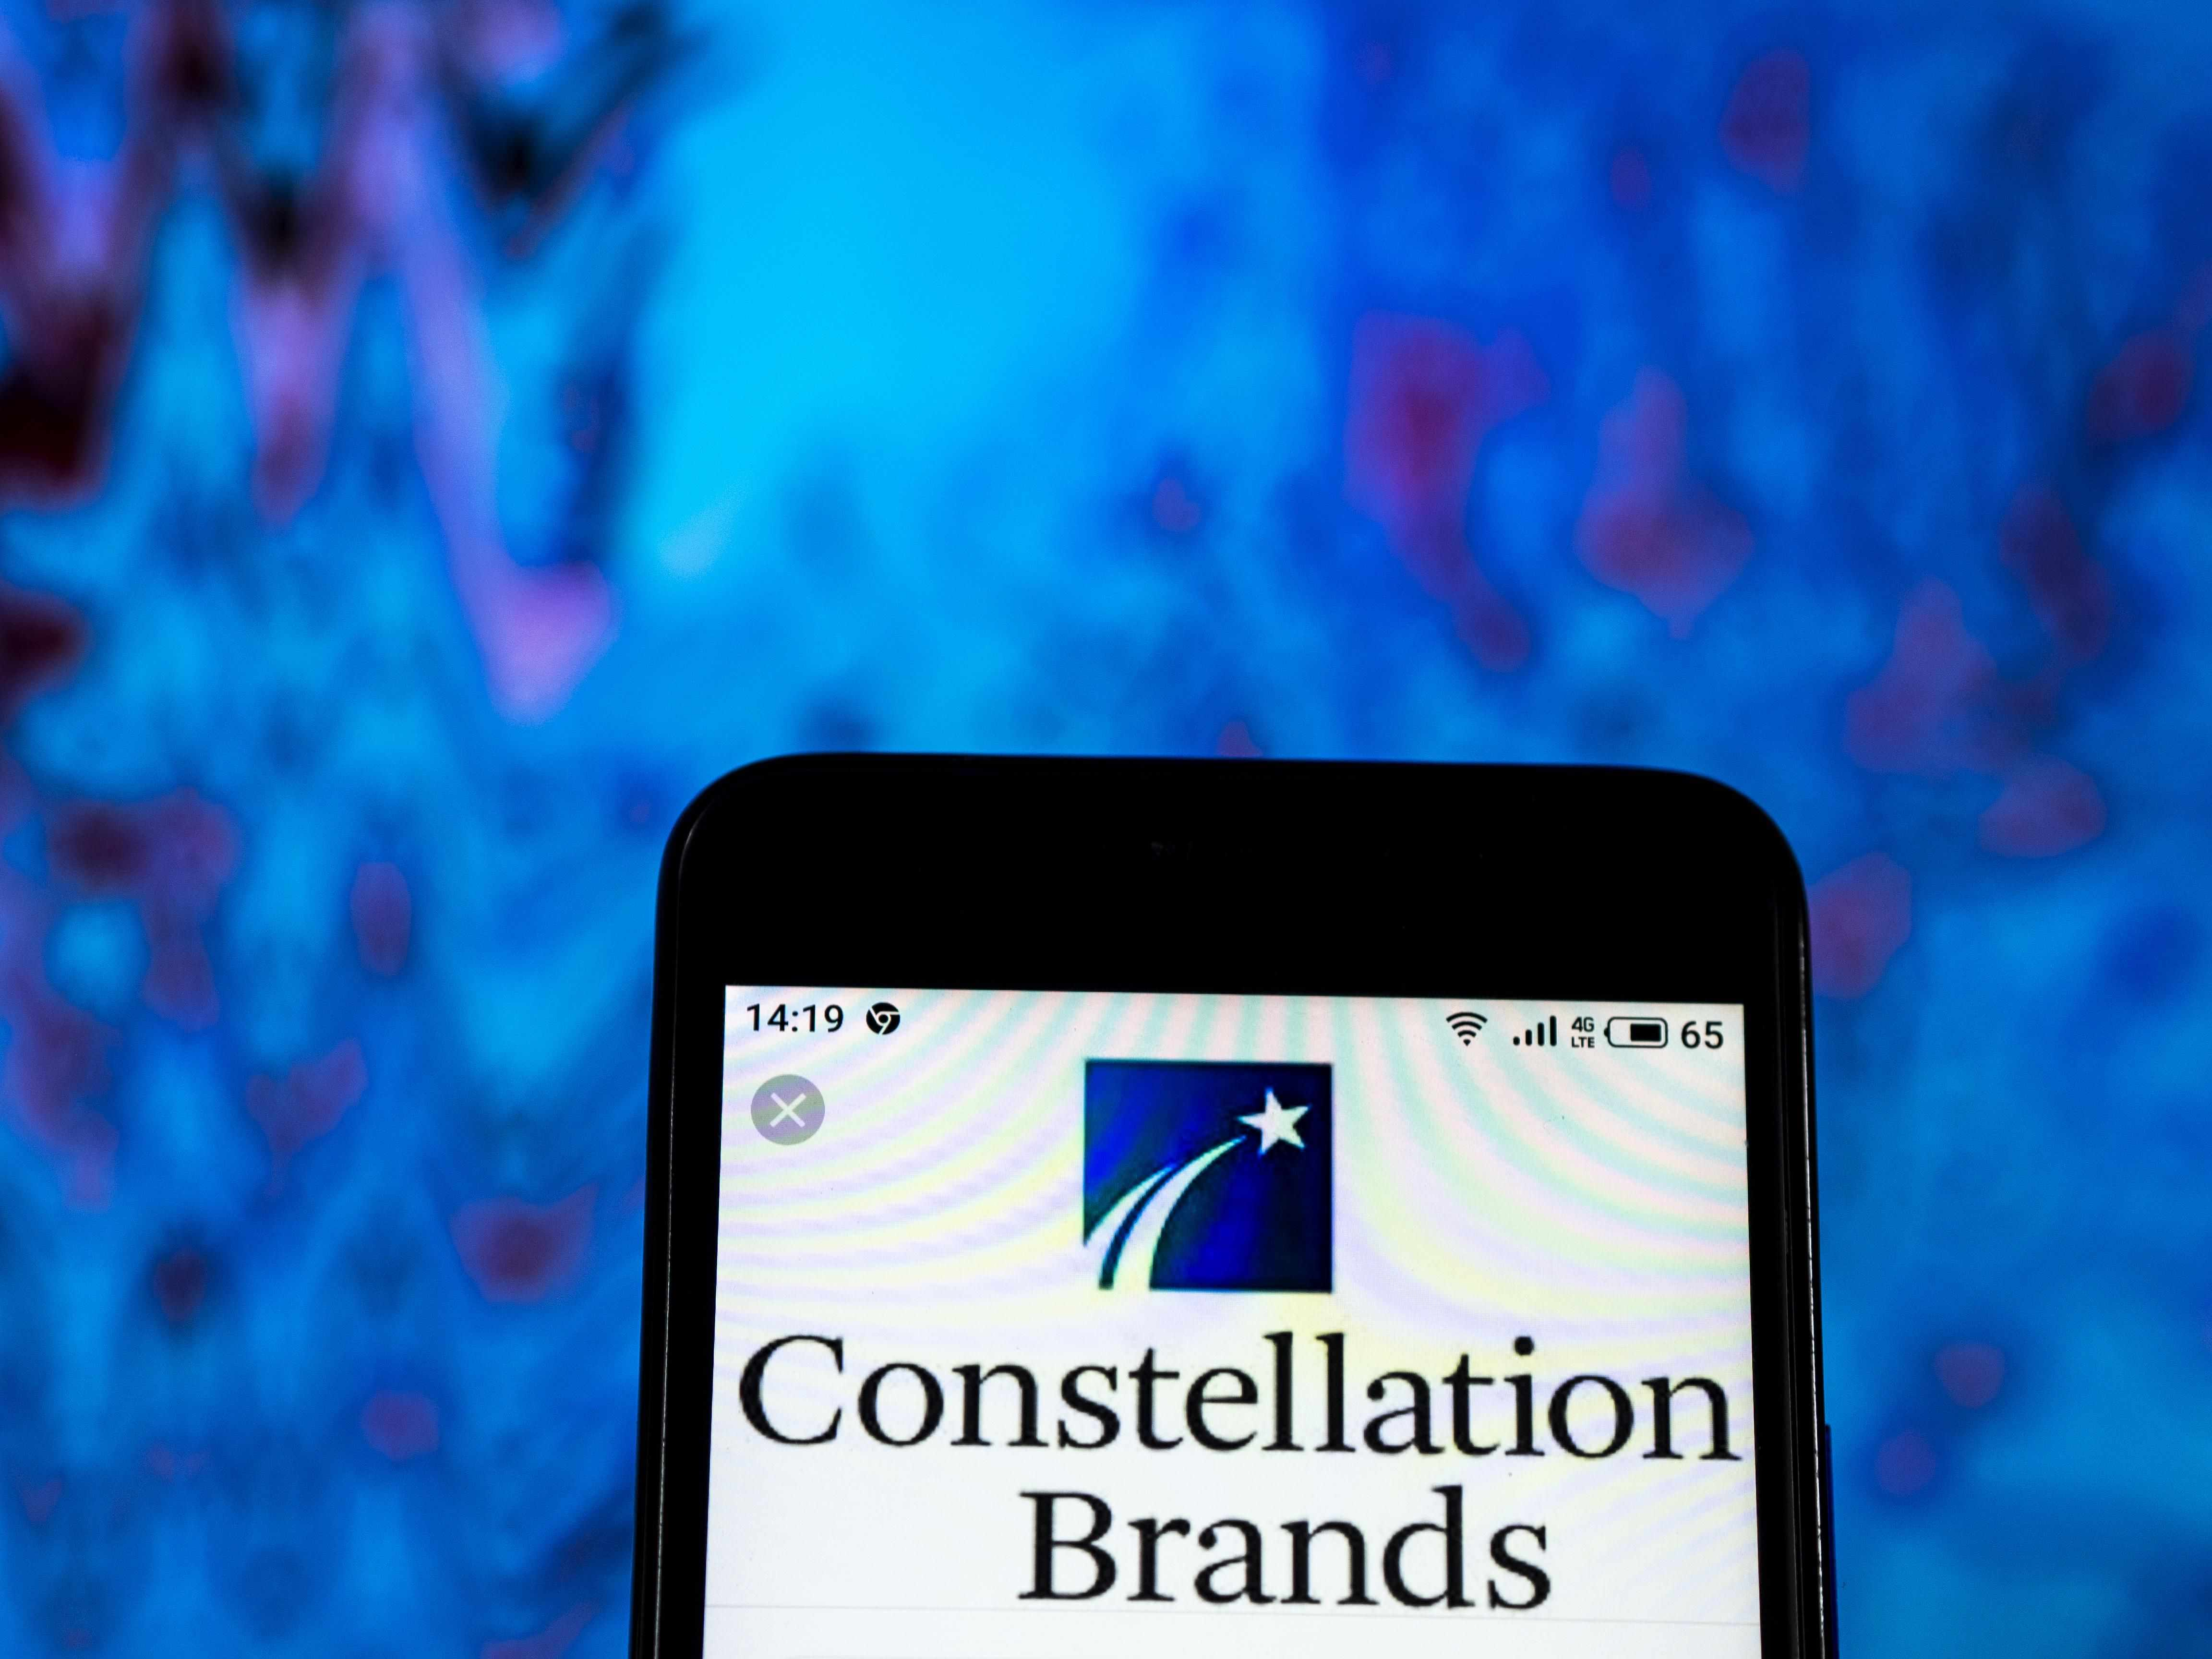 constellation brands covid level recovery